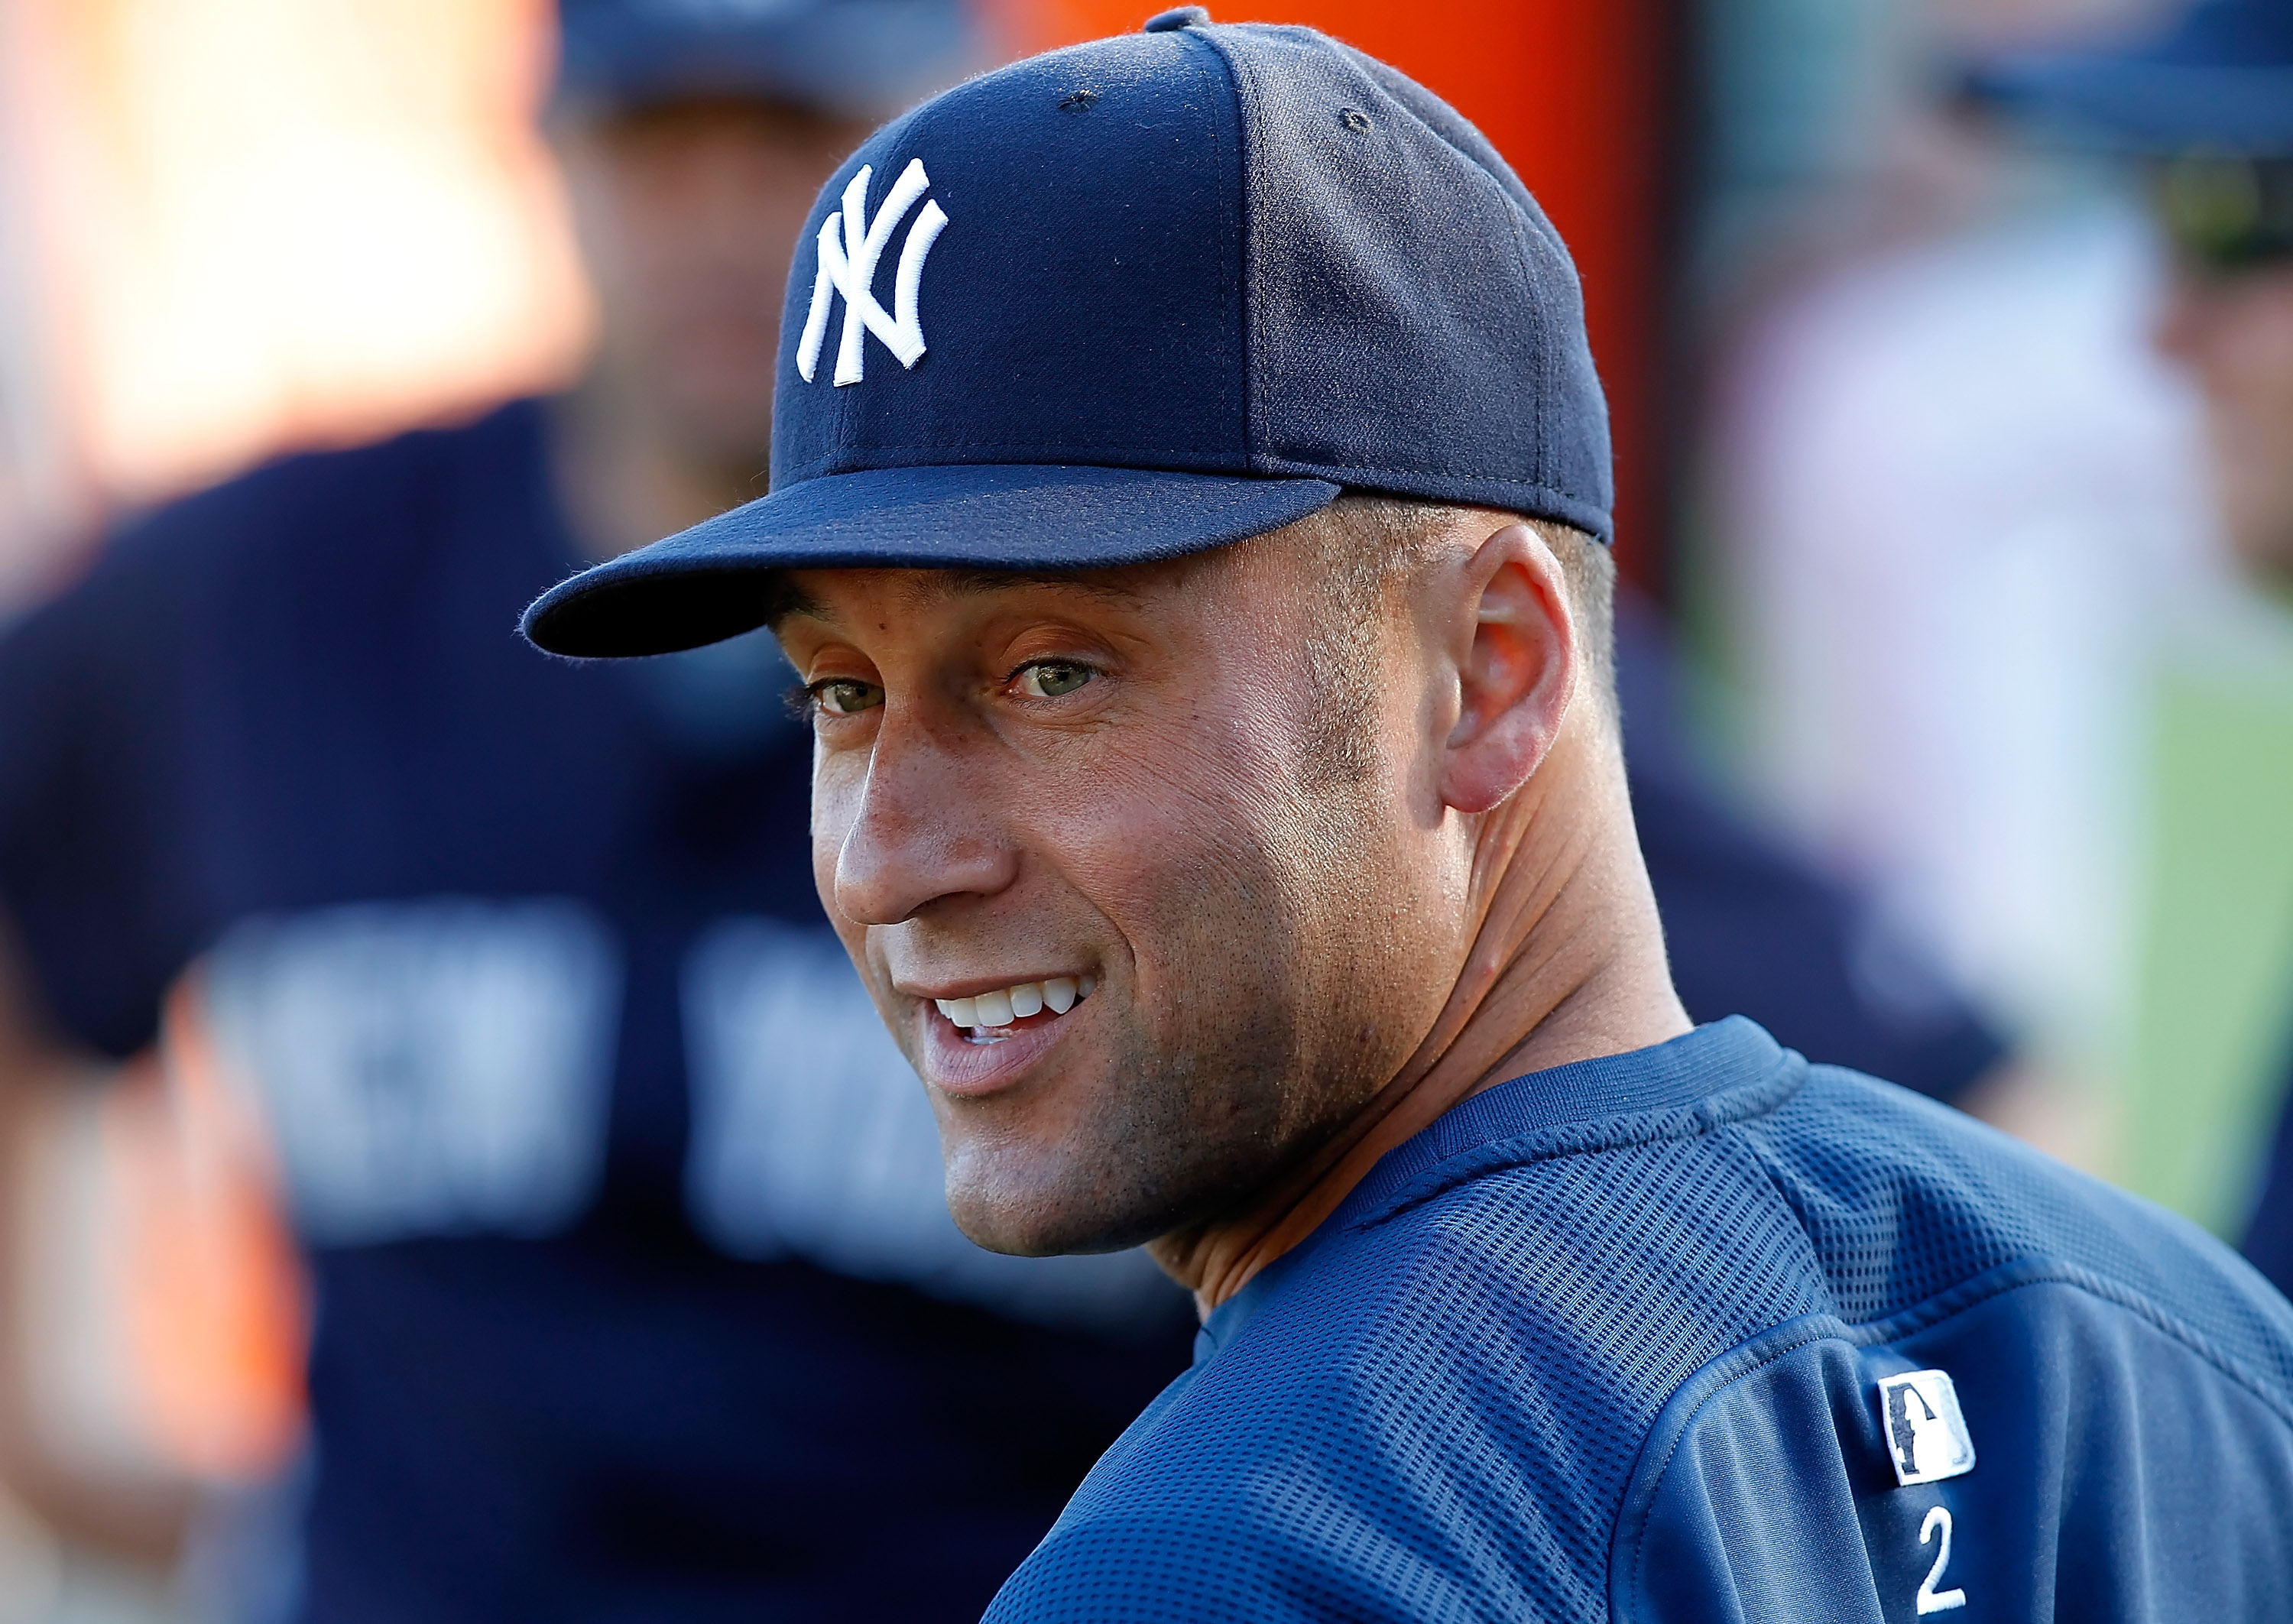 SARASOTA, FL - MARCH 07:  Infielder Derek Jeter #2 of the New York Yankees warms up just prior to the start of the Grapefruit League Spring Training Game against the Baltimore Orioles at Ed Smith Stadium on March 7, 2011 in Sarasota, Florida.  (Photo by J